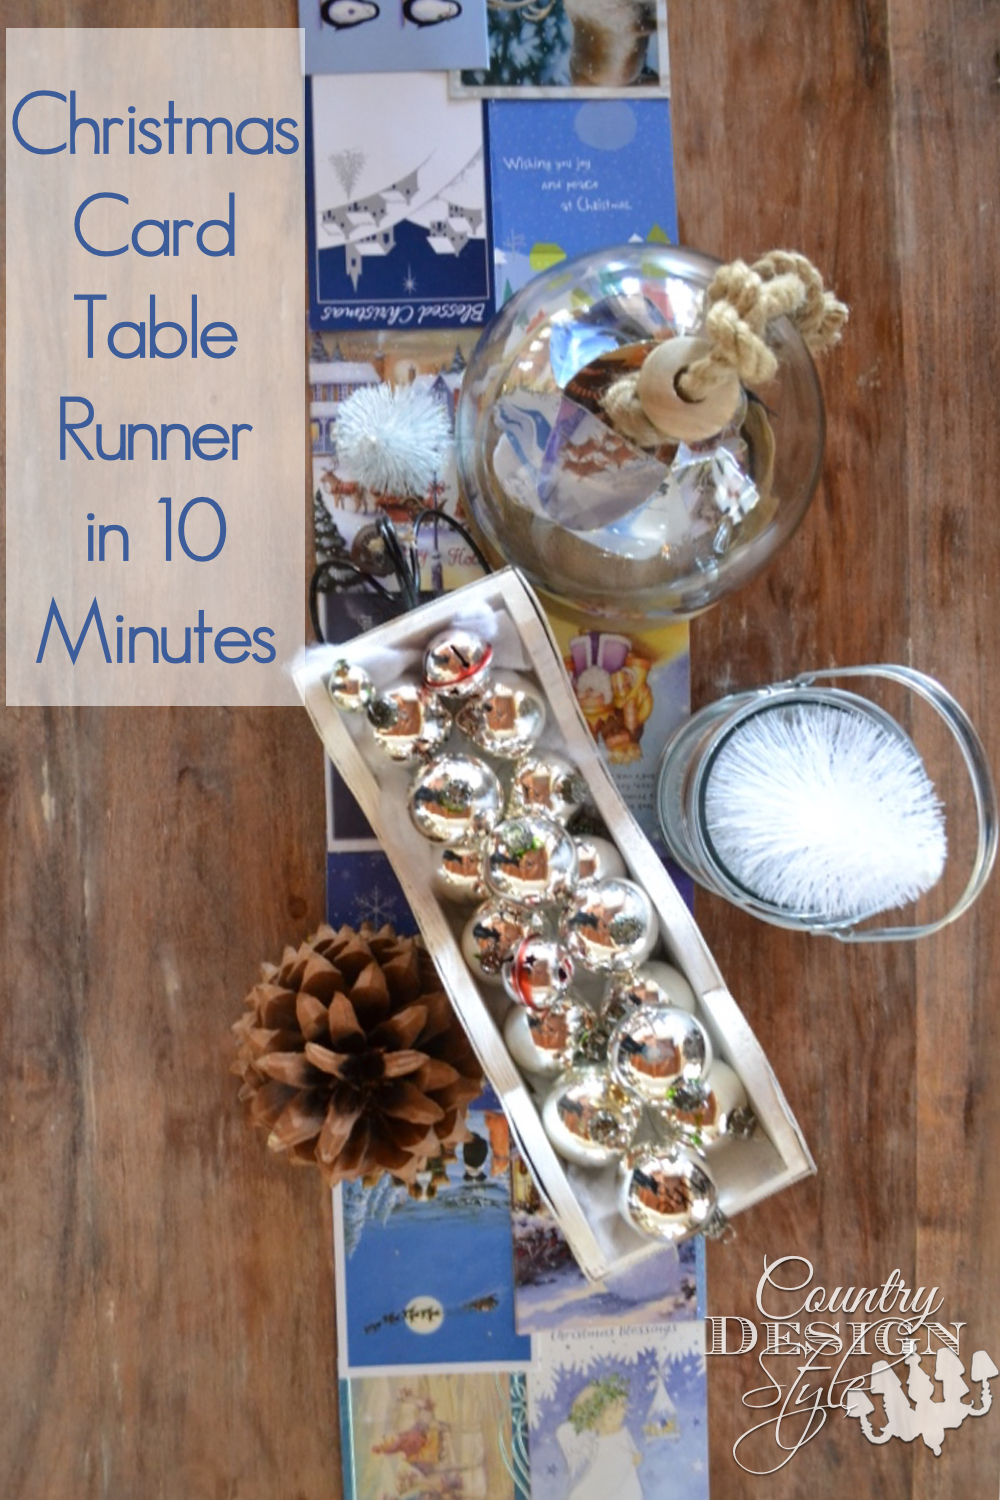 Christmas card diy projects for 10 minute table runner placemats